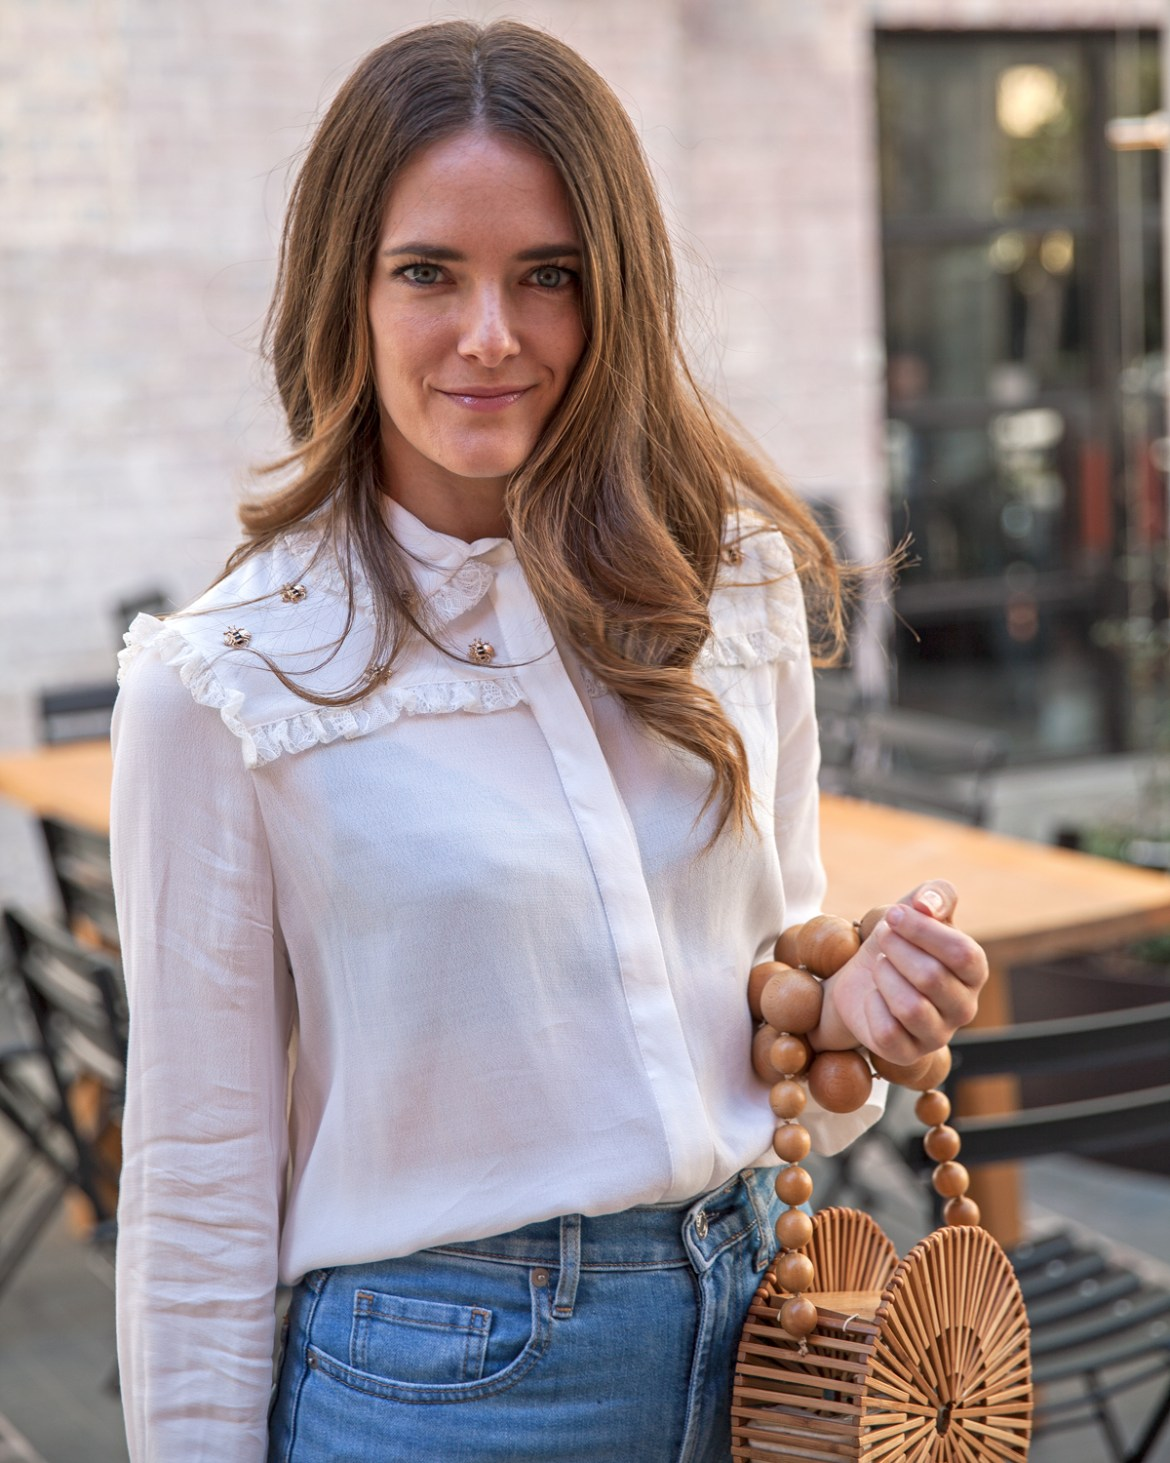 Maje bee blouse worn by Australian fashion blogger Jenelle Witty of Inspiring Wit with Cult Gaia circle bag